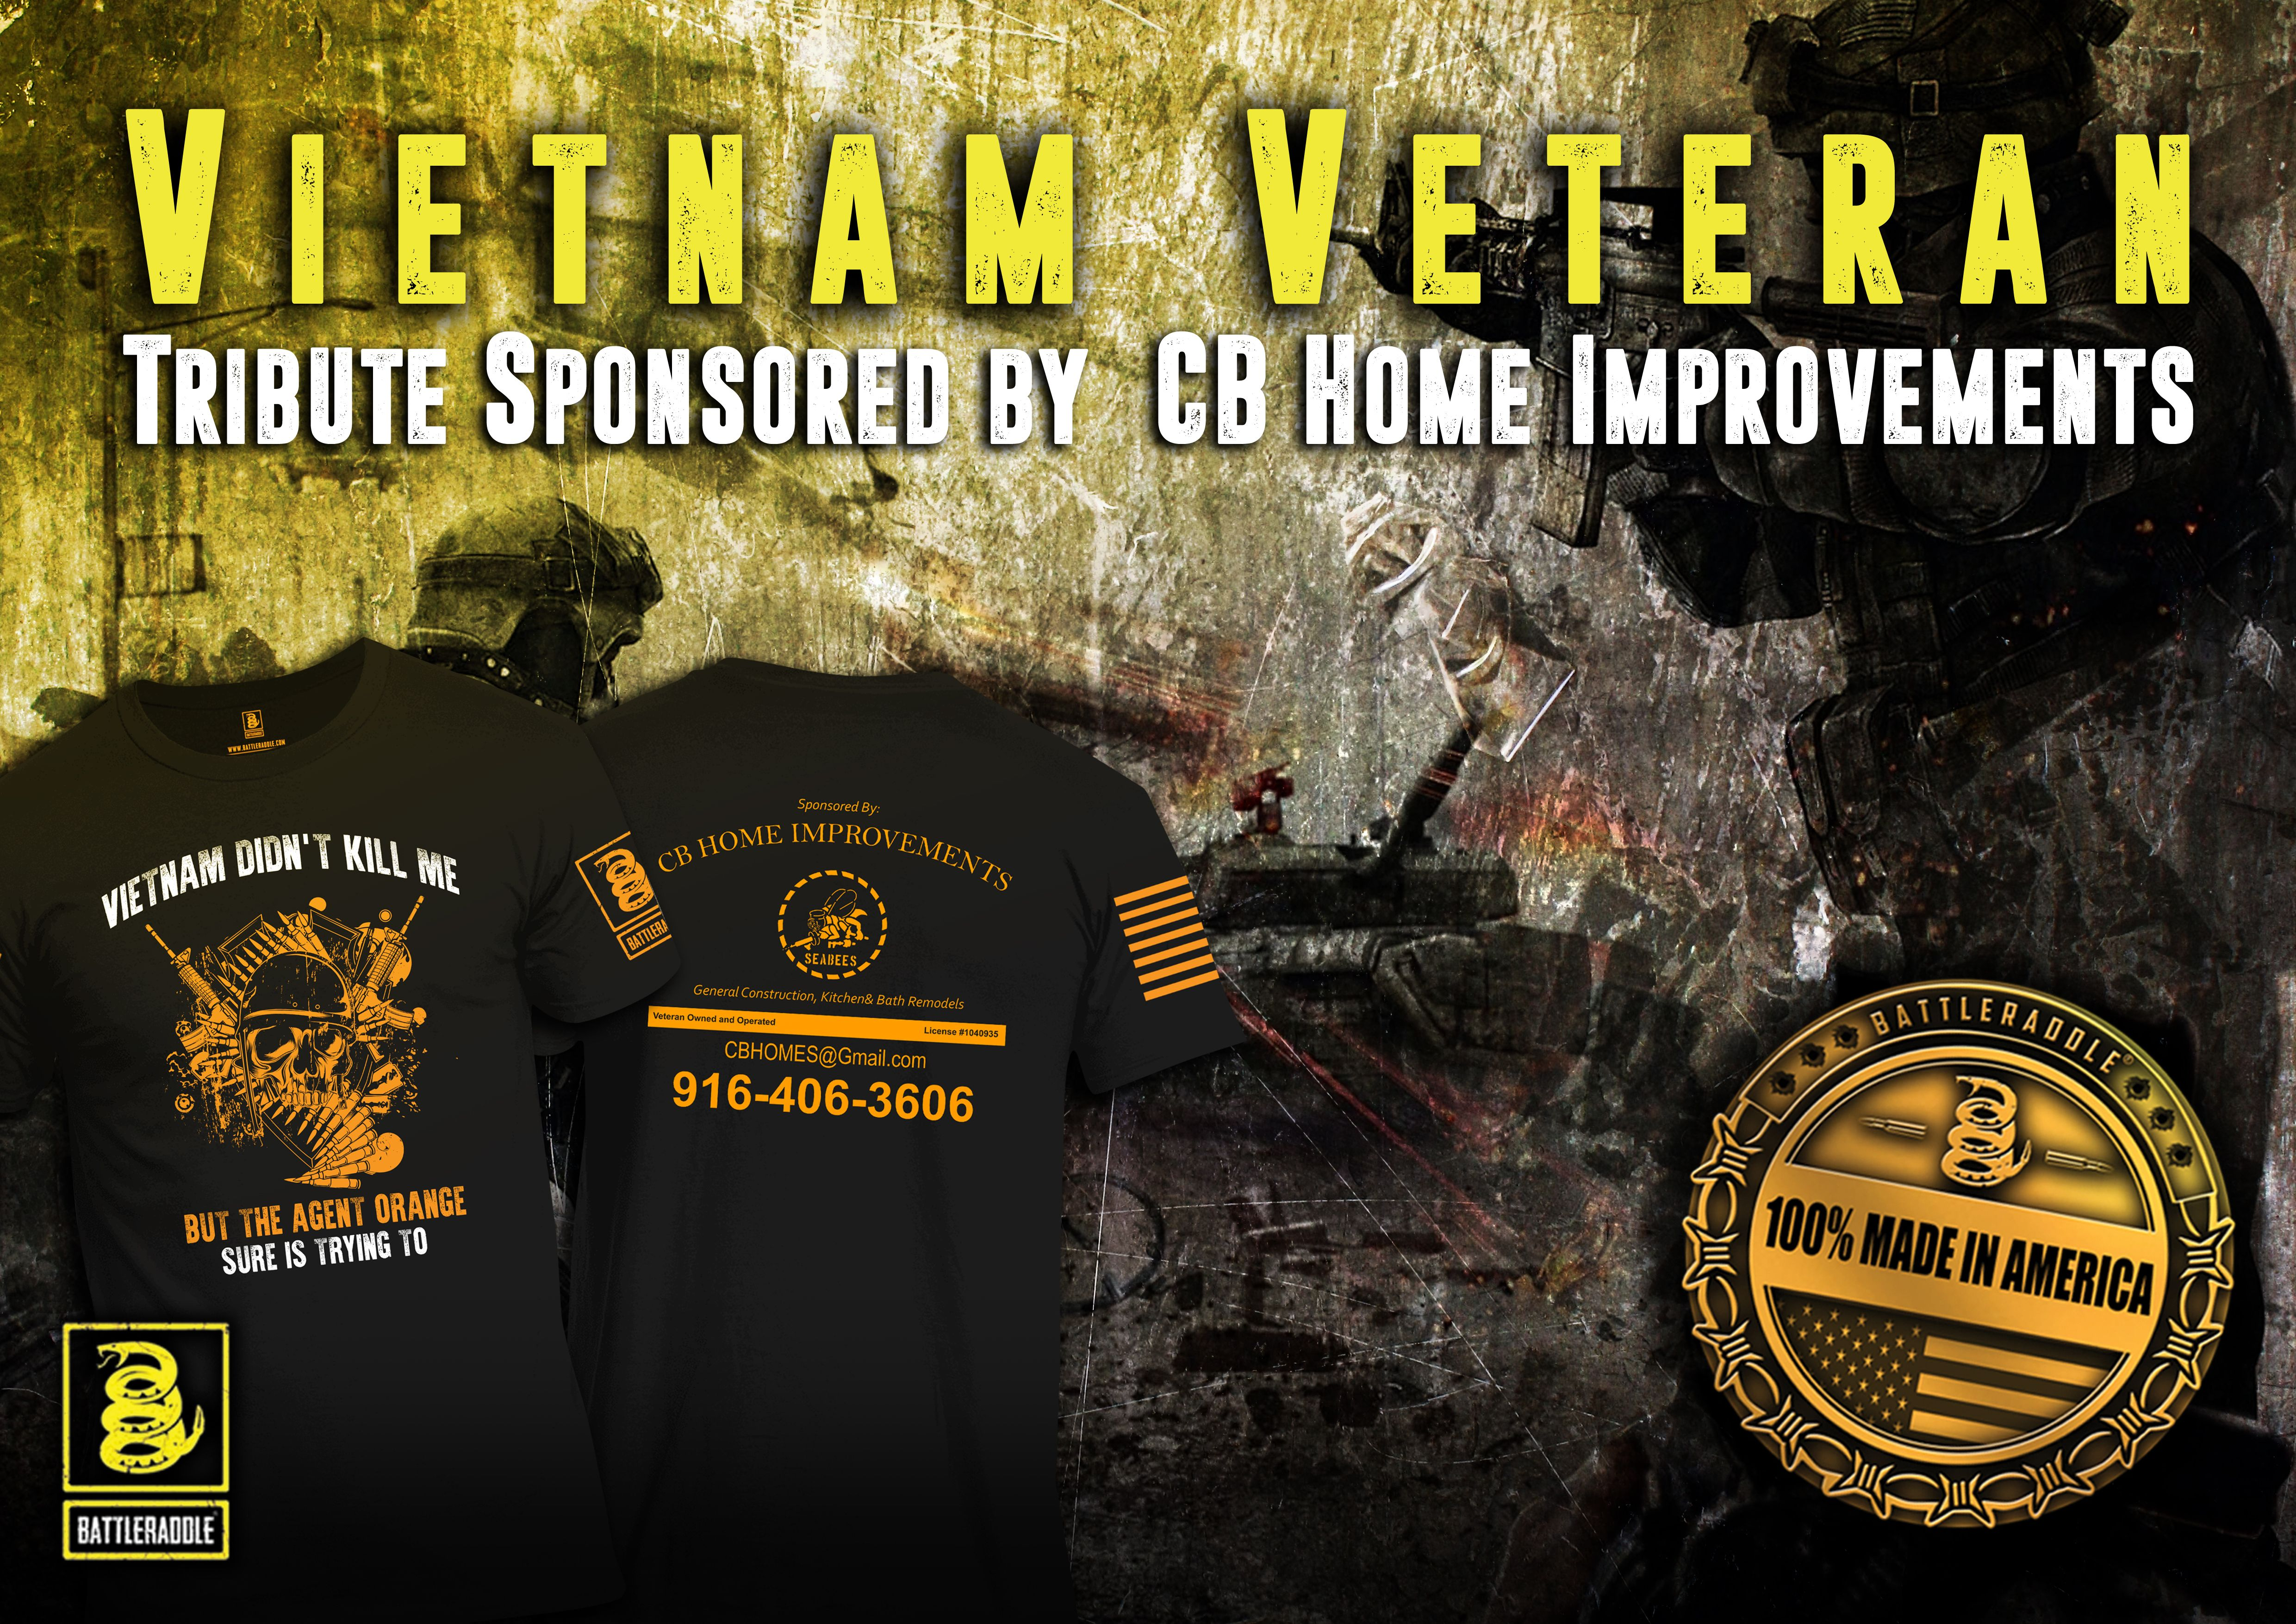 Listen Facebook Buy This Shirt And Battleraddle And Cb Home